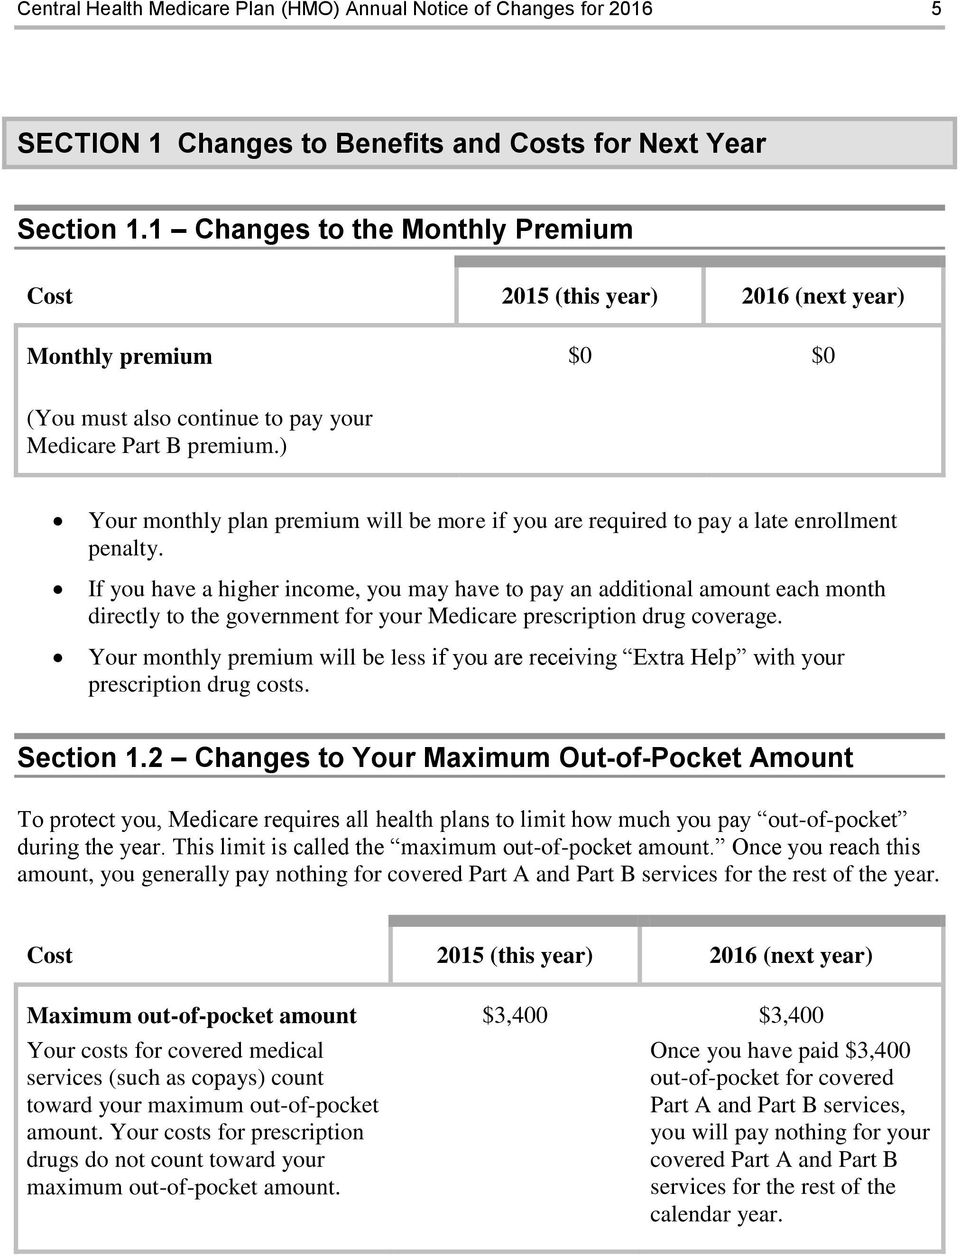 ) Your monthly plan premium will be more if you are required to pay a late enrollment penalty.